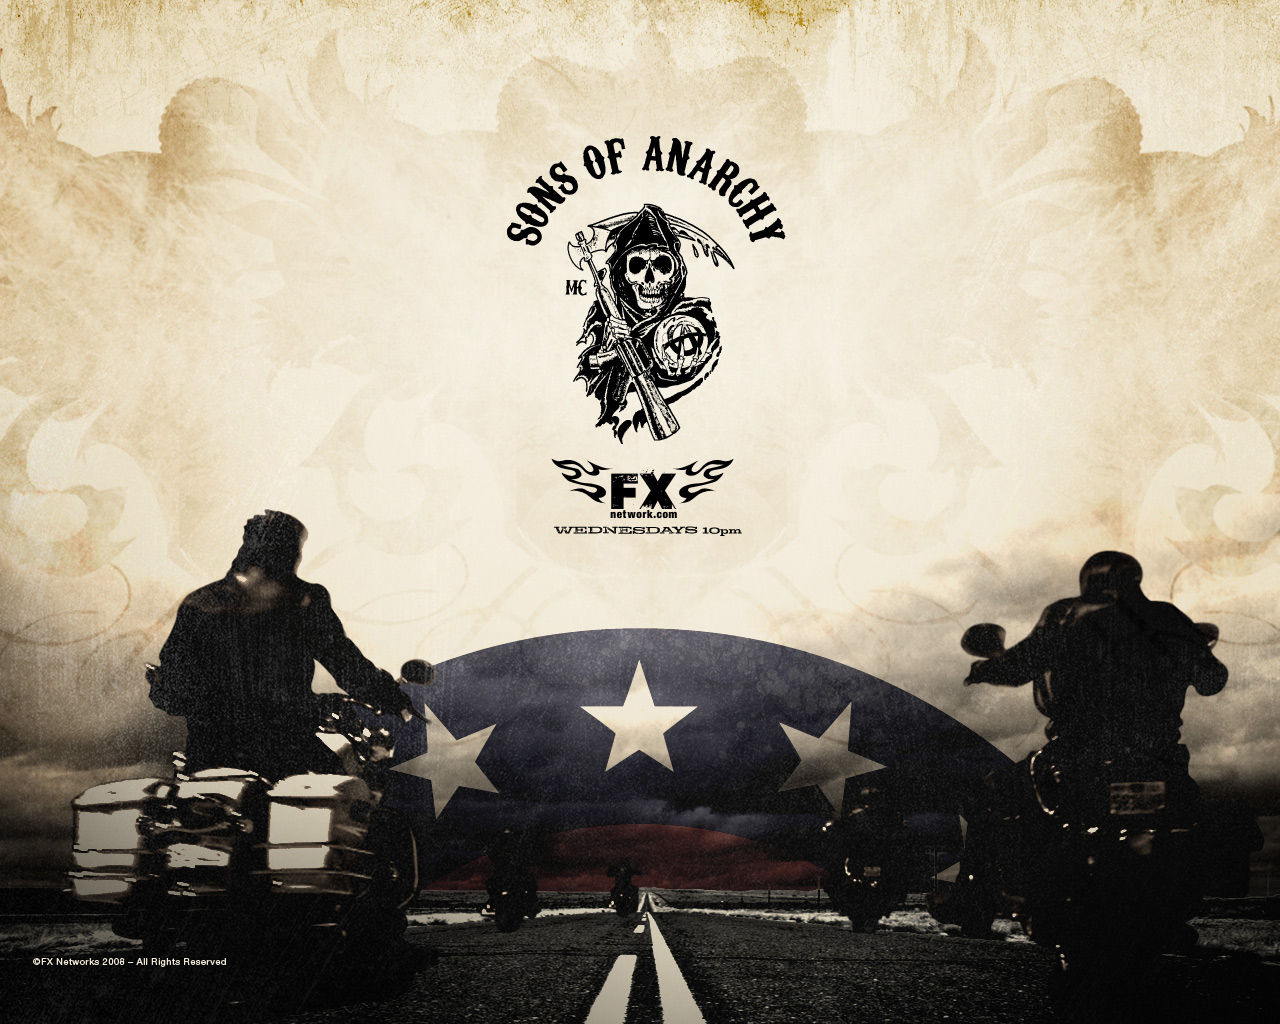 tv_sons_of_anarchy04.jpg